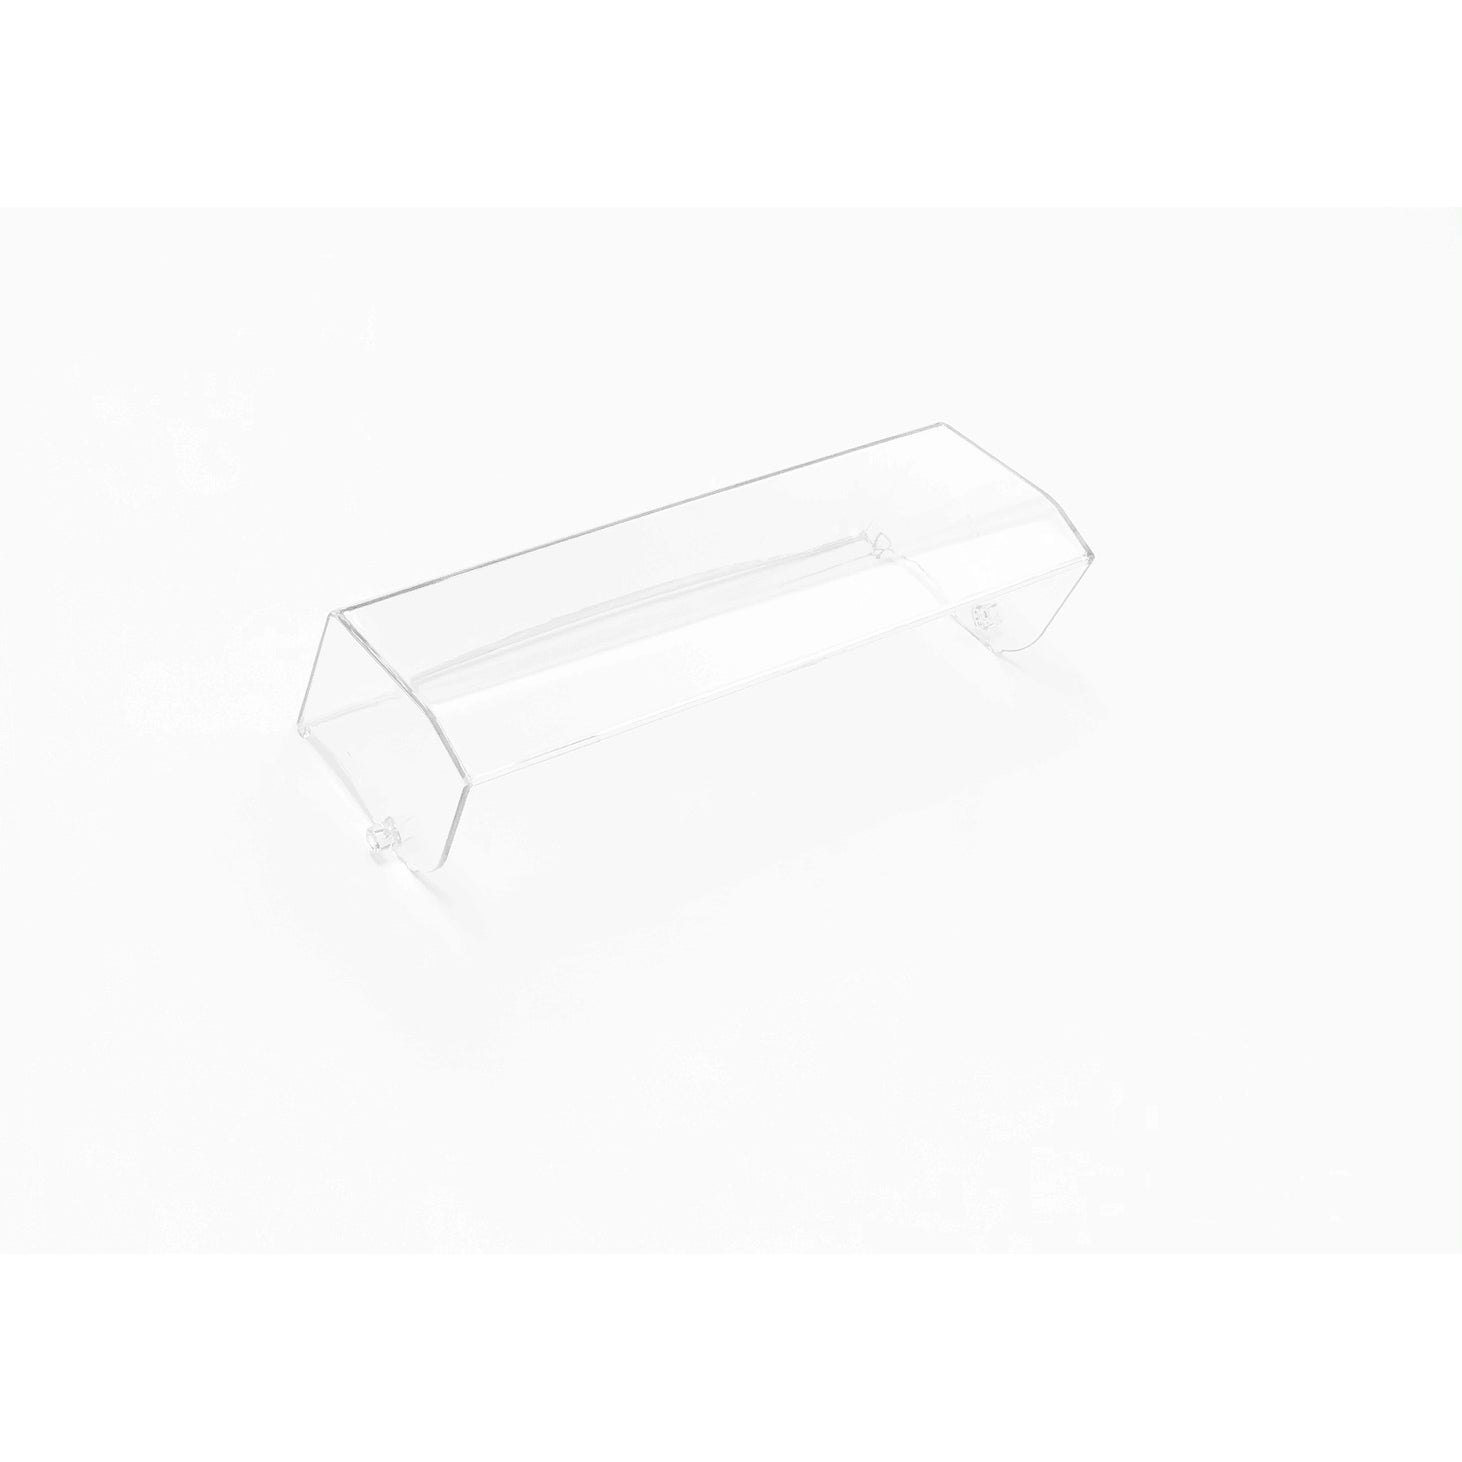 OEM LG Rerigerator Dairy Bin Window Shipped With LMX25986ST, LMX25986SW